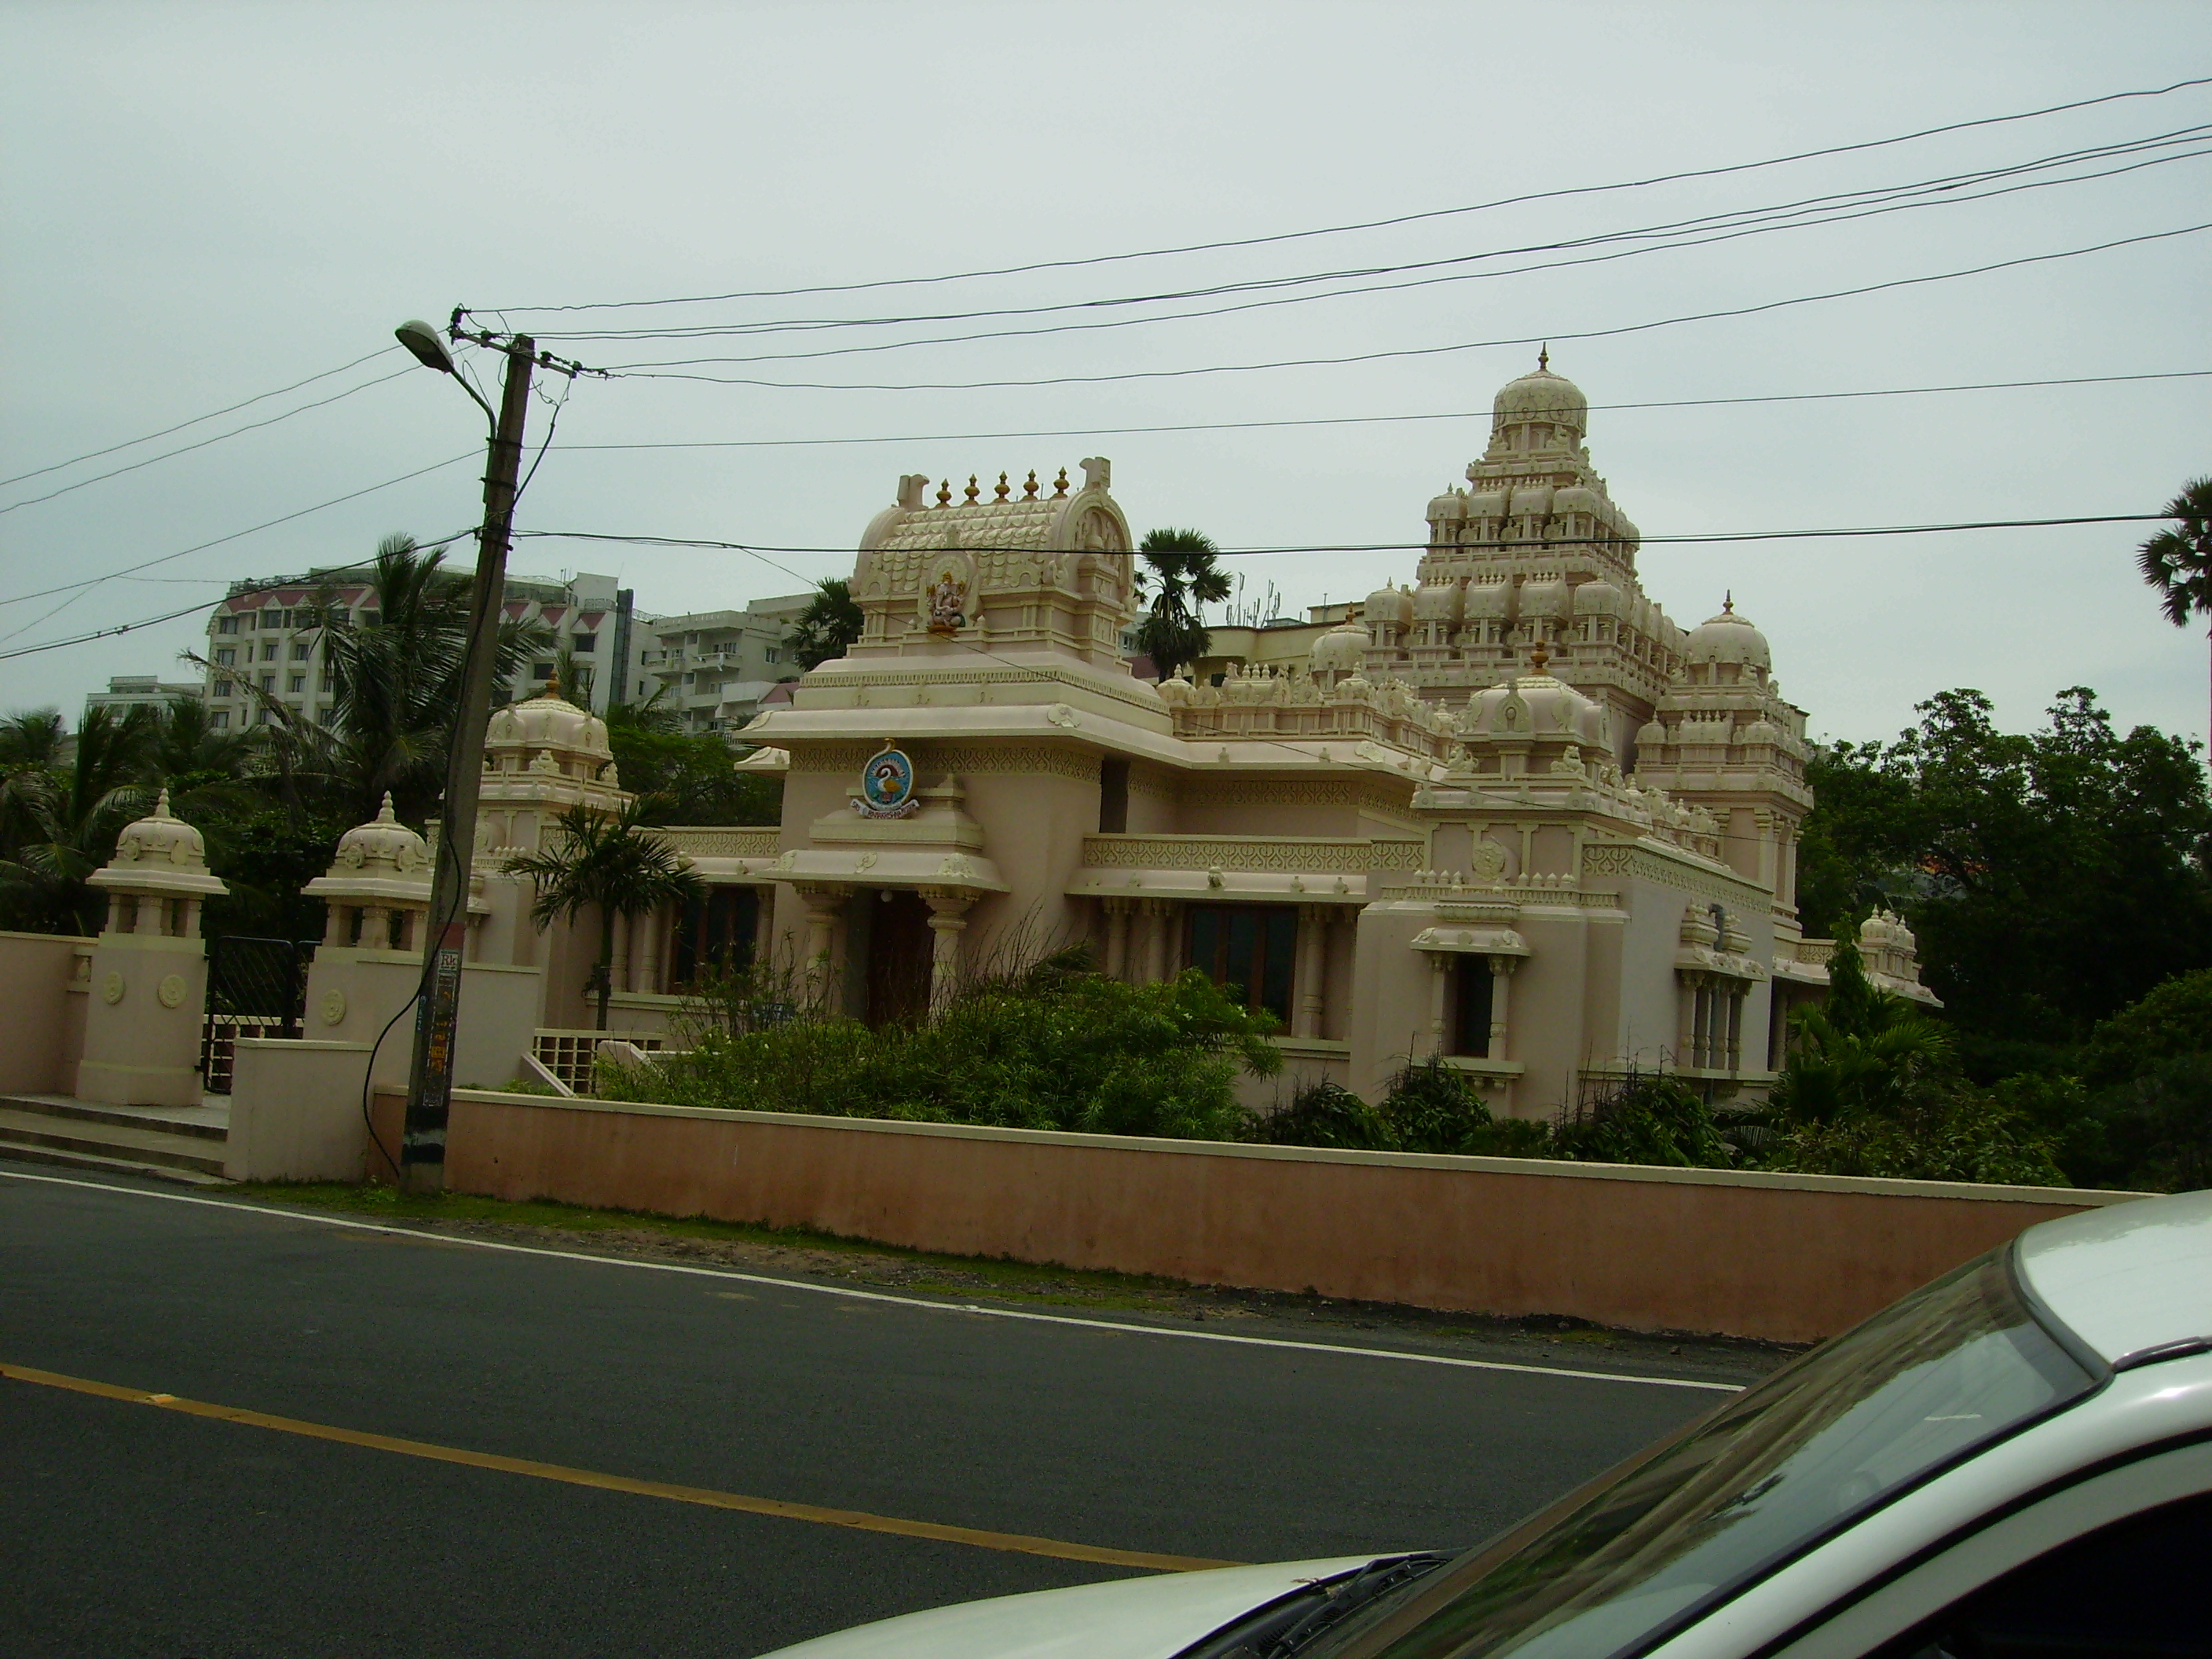 Ramakrishna Mission near RK Beach